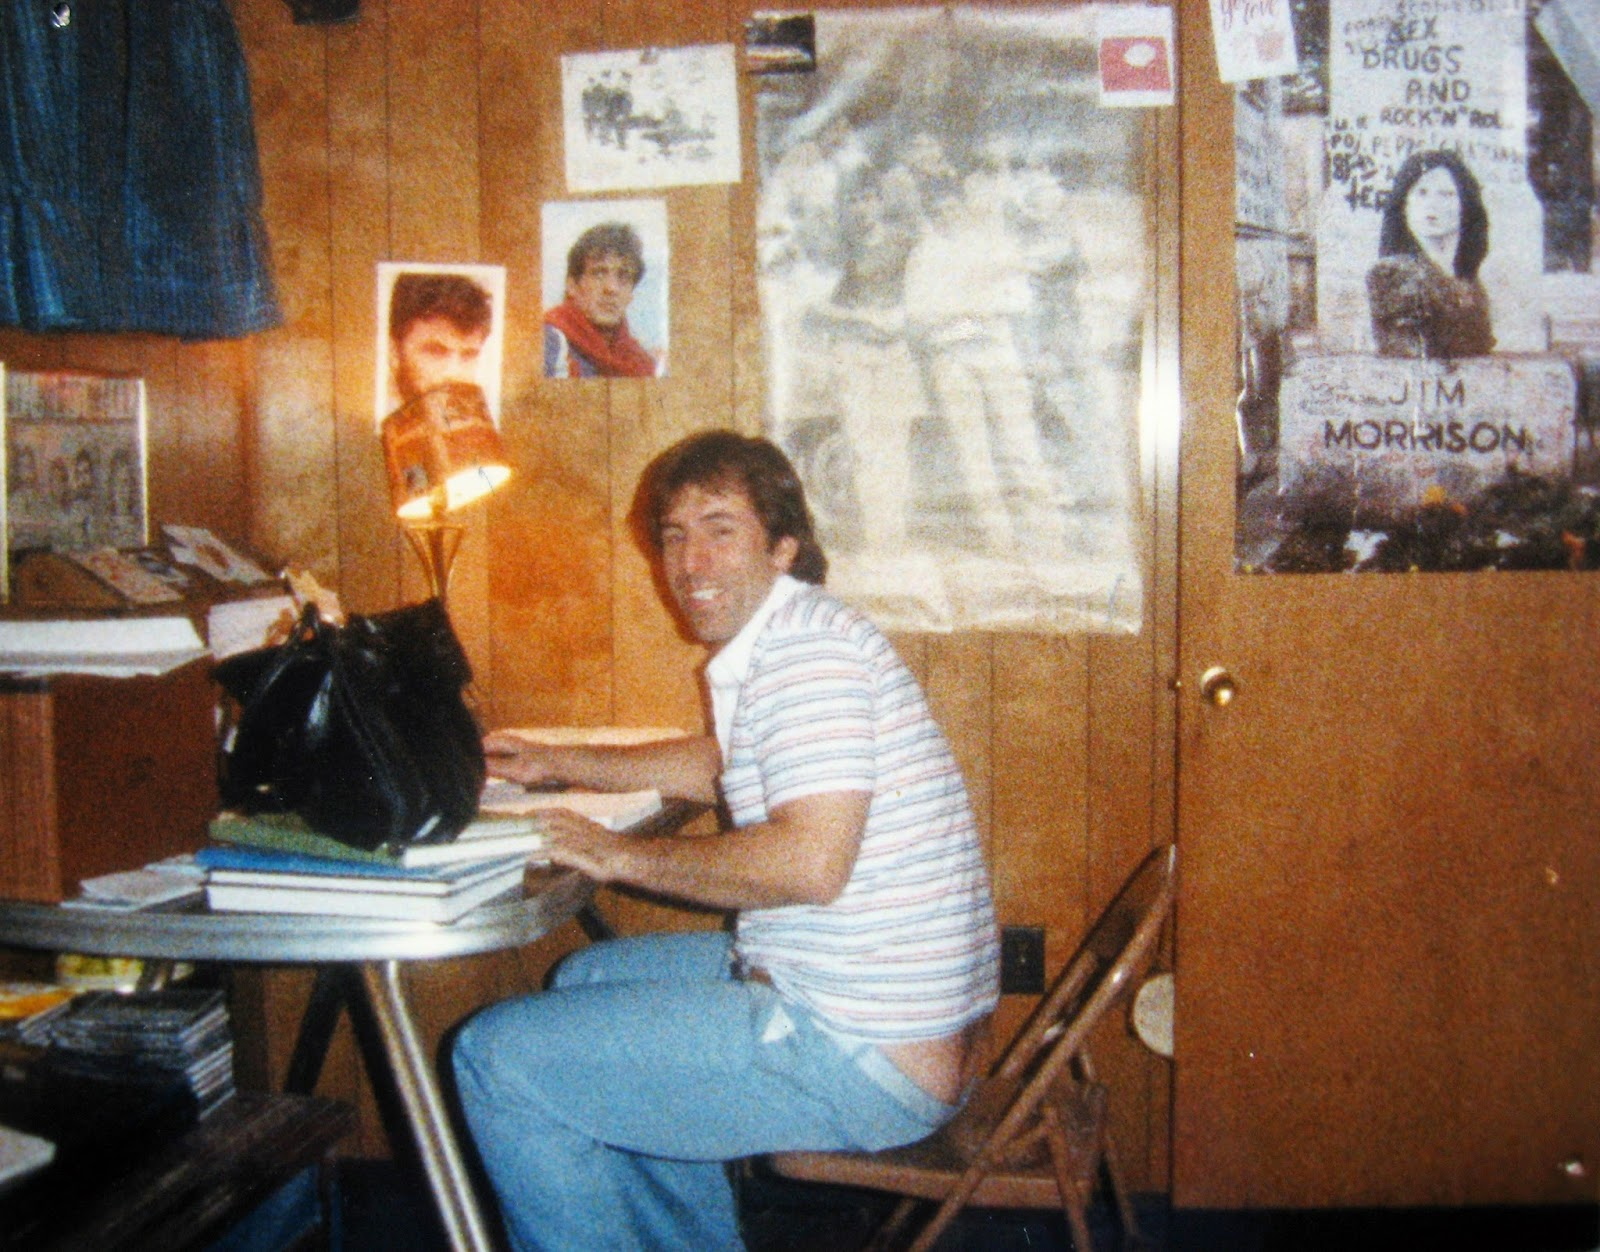 Tommy Mondello at the tail end of his basement days... my Batcave!